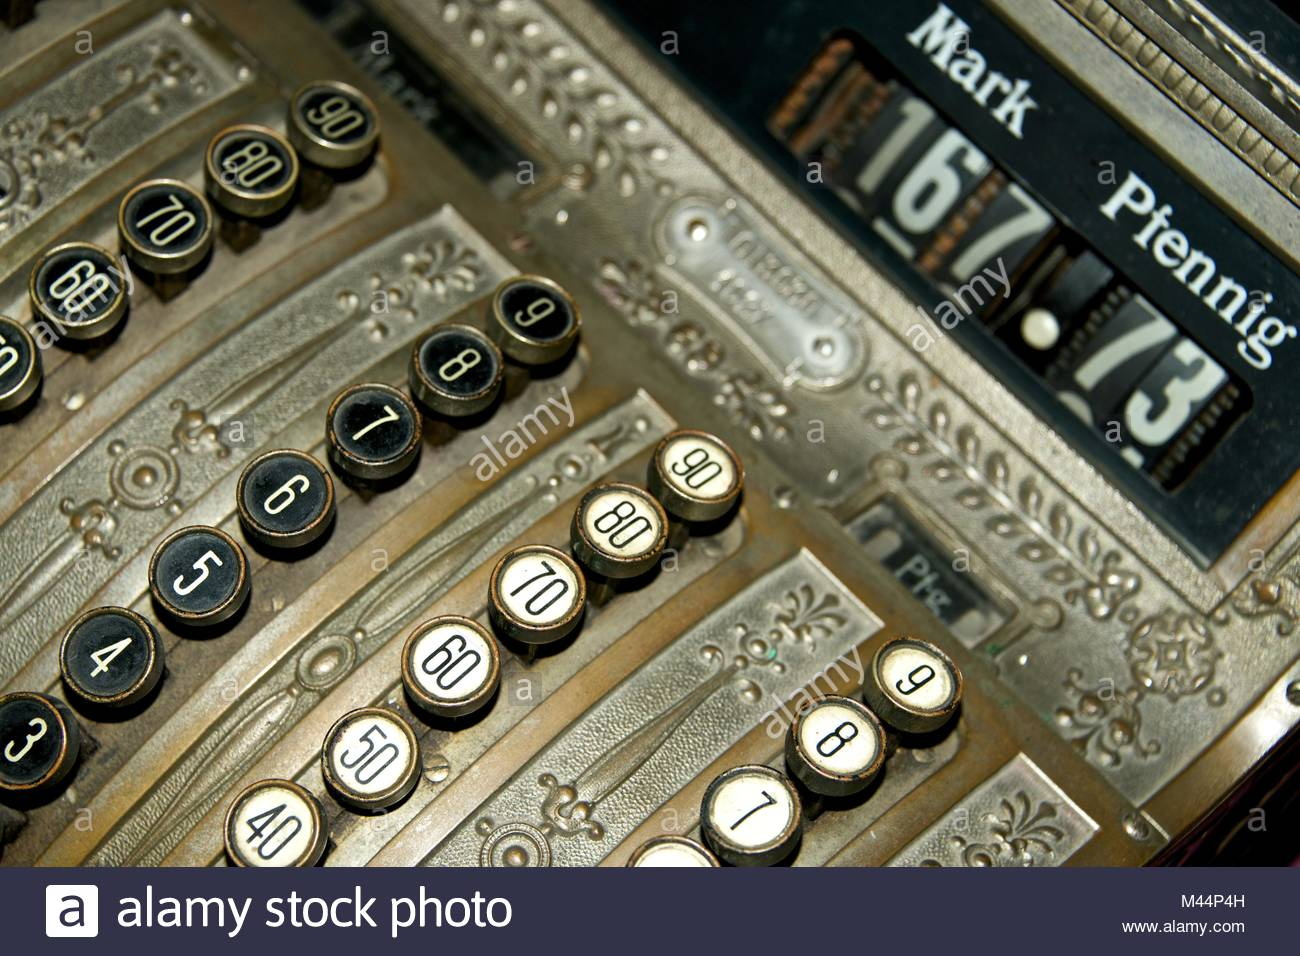 Angled view of old German cash register - Stock Image